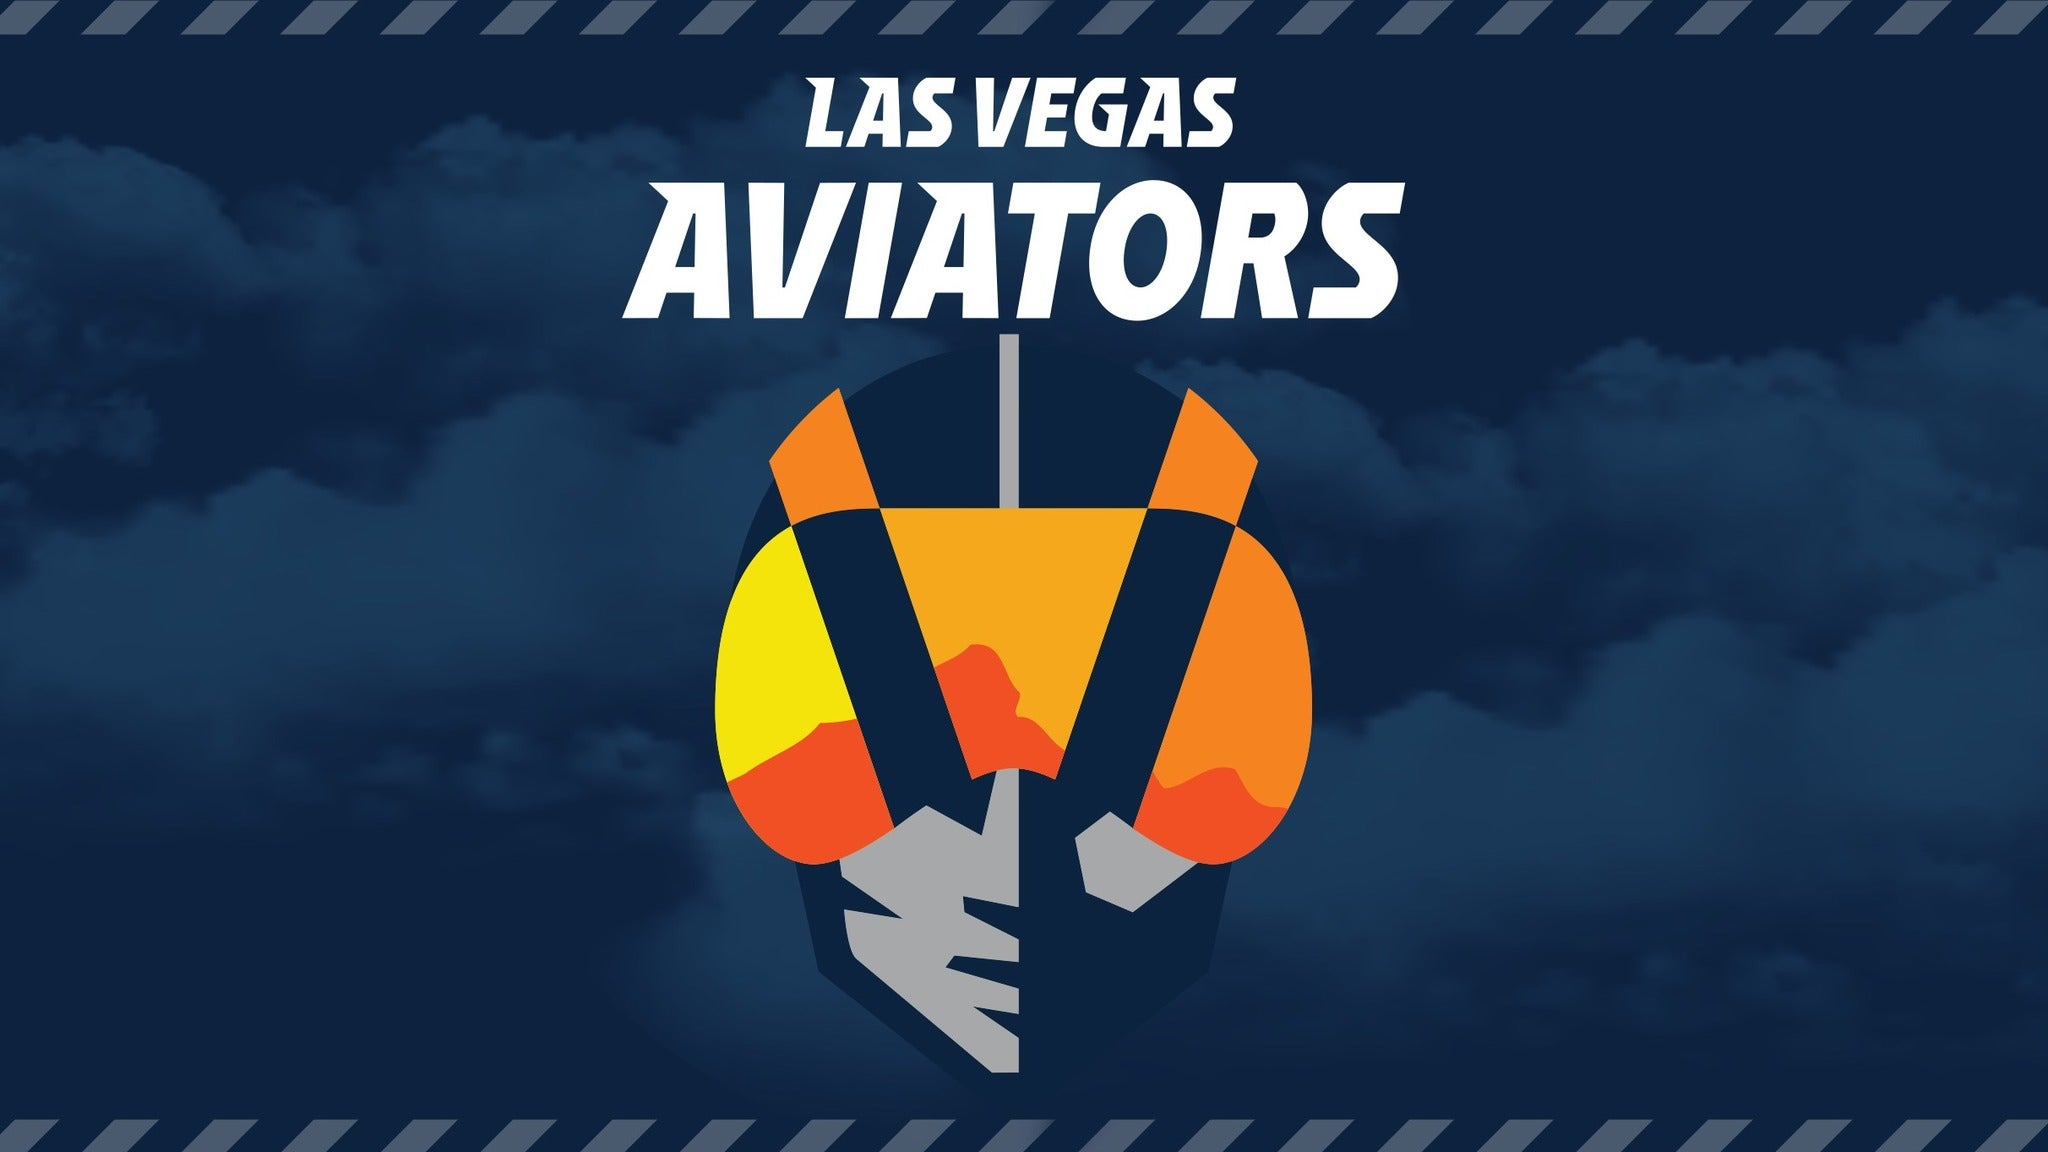 Las Vegas Aviators vs. Salt Lake Bees at Las Vegas Ballpark